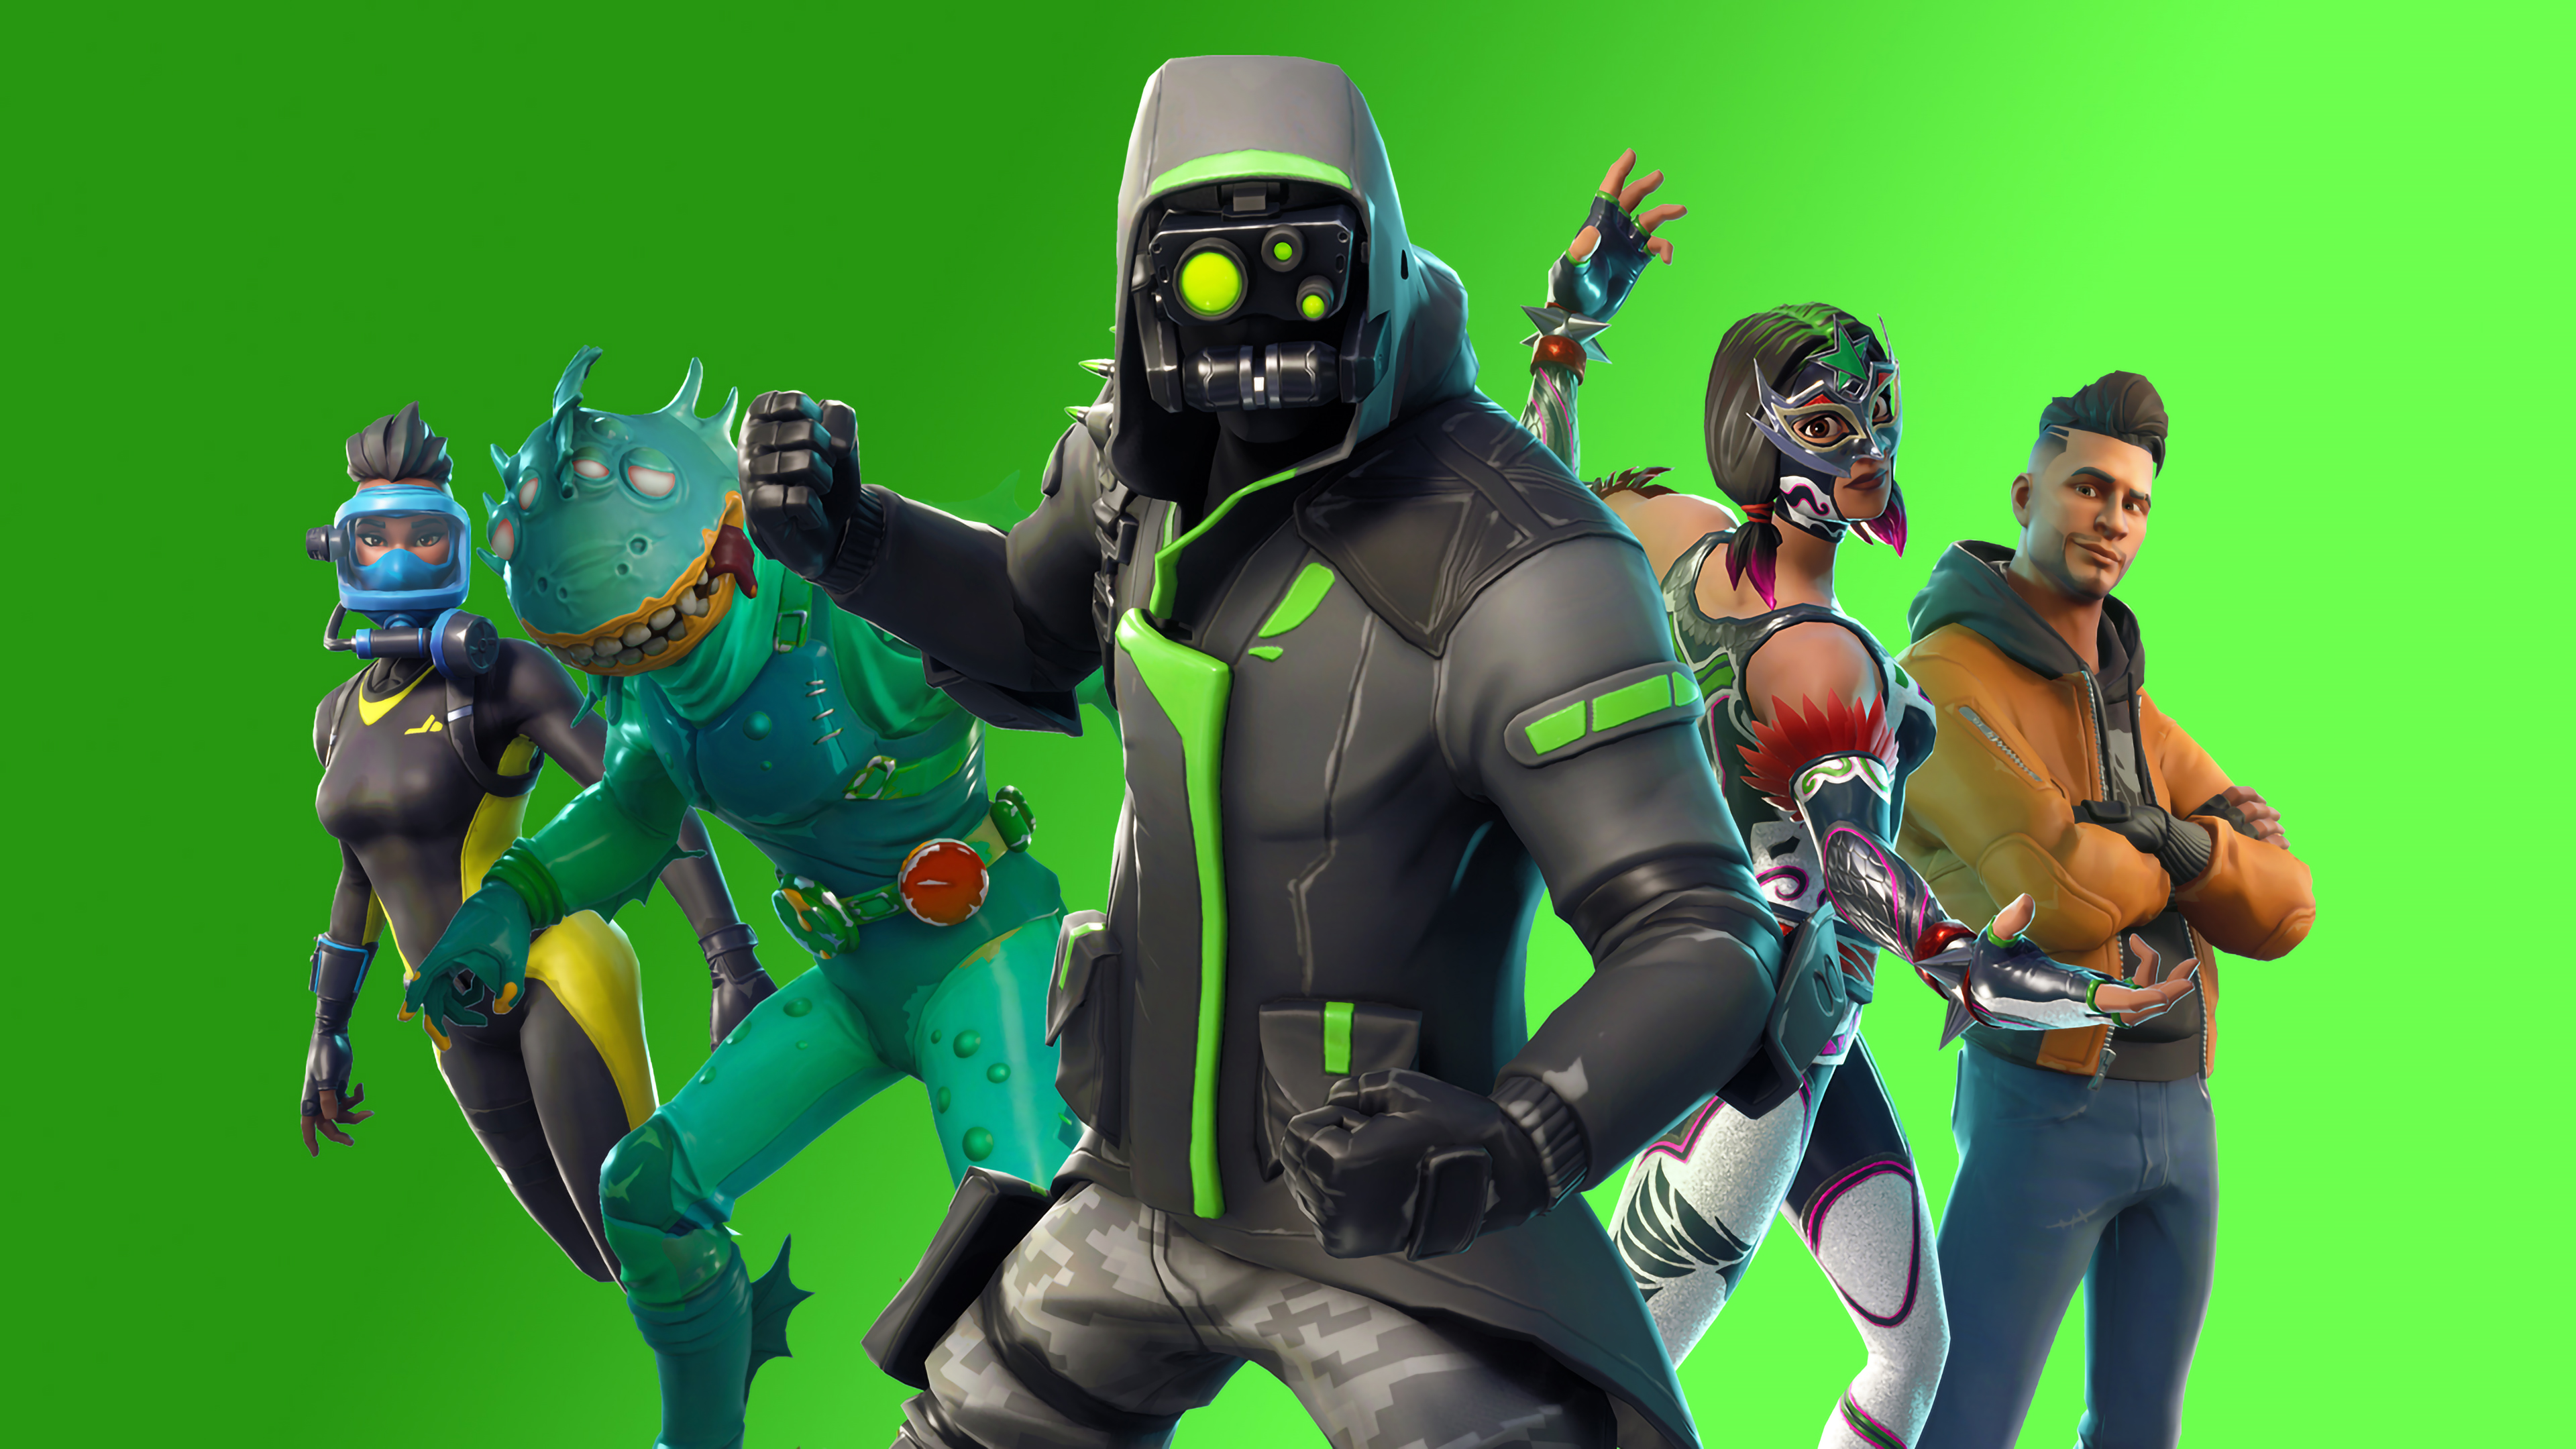 4k Fortnite Wallpaper   Season 8   Fortnite News Skins Settings 3840x2160